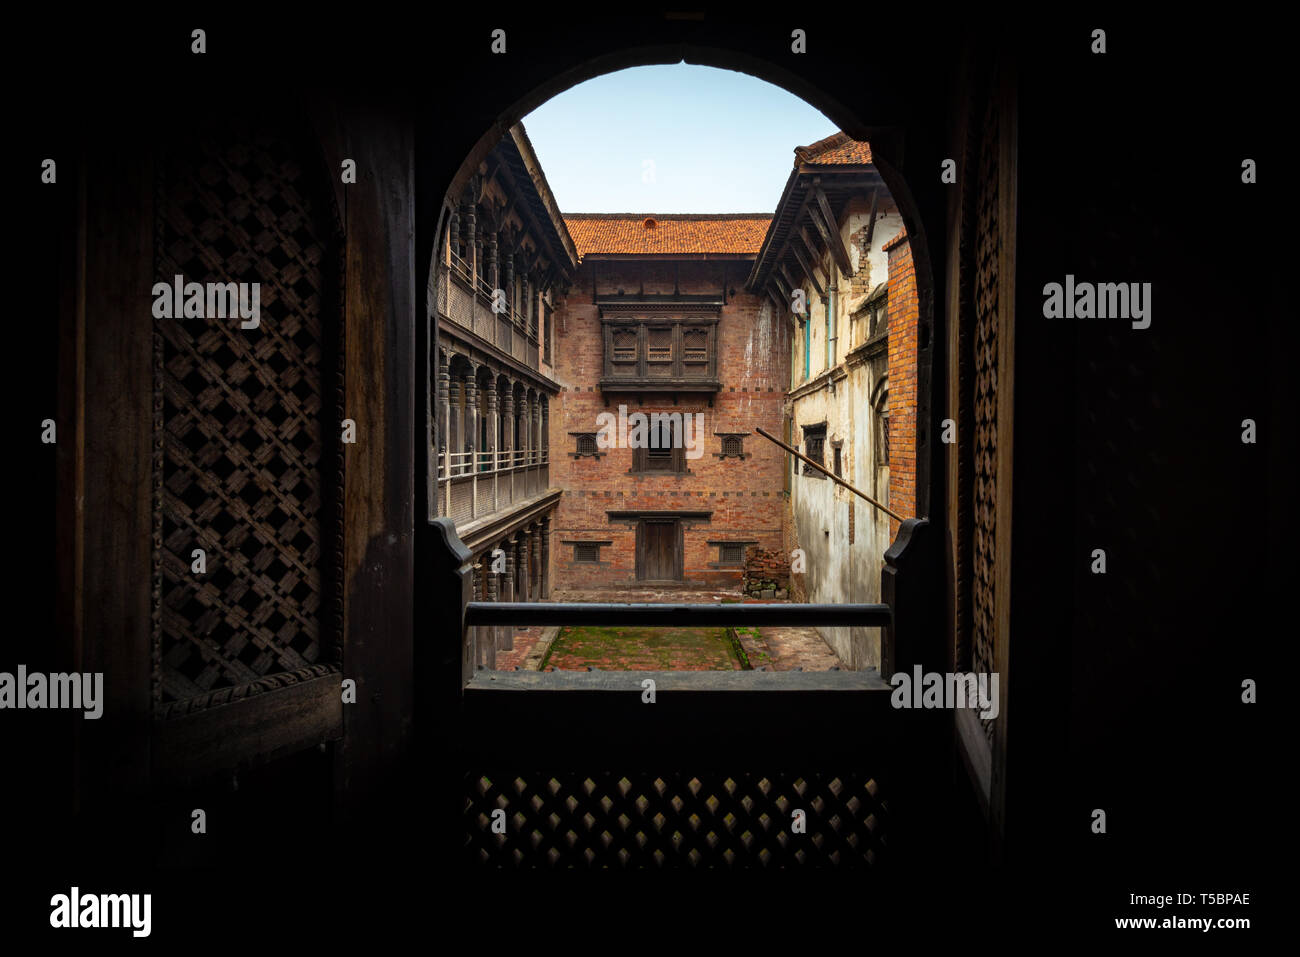 View from an obscure room on one of the internal courtyard of the 55 Window Palace located in the historical center of Bhaktapur, Nepal - Stock Image